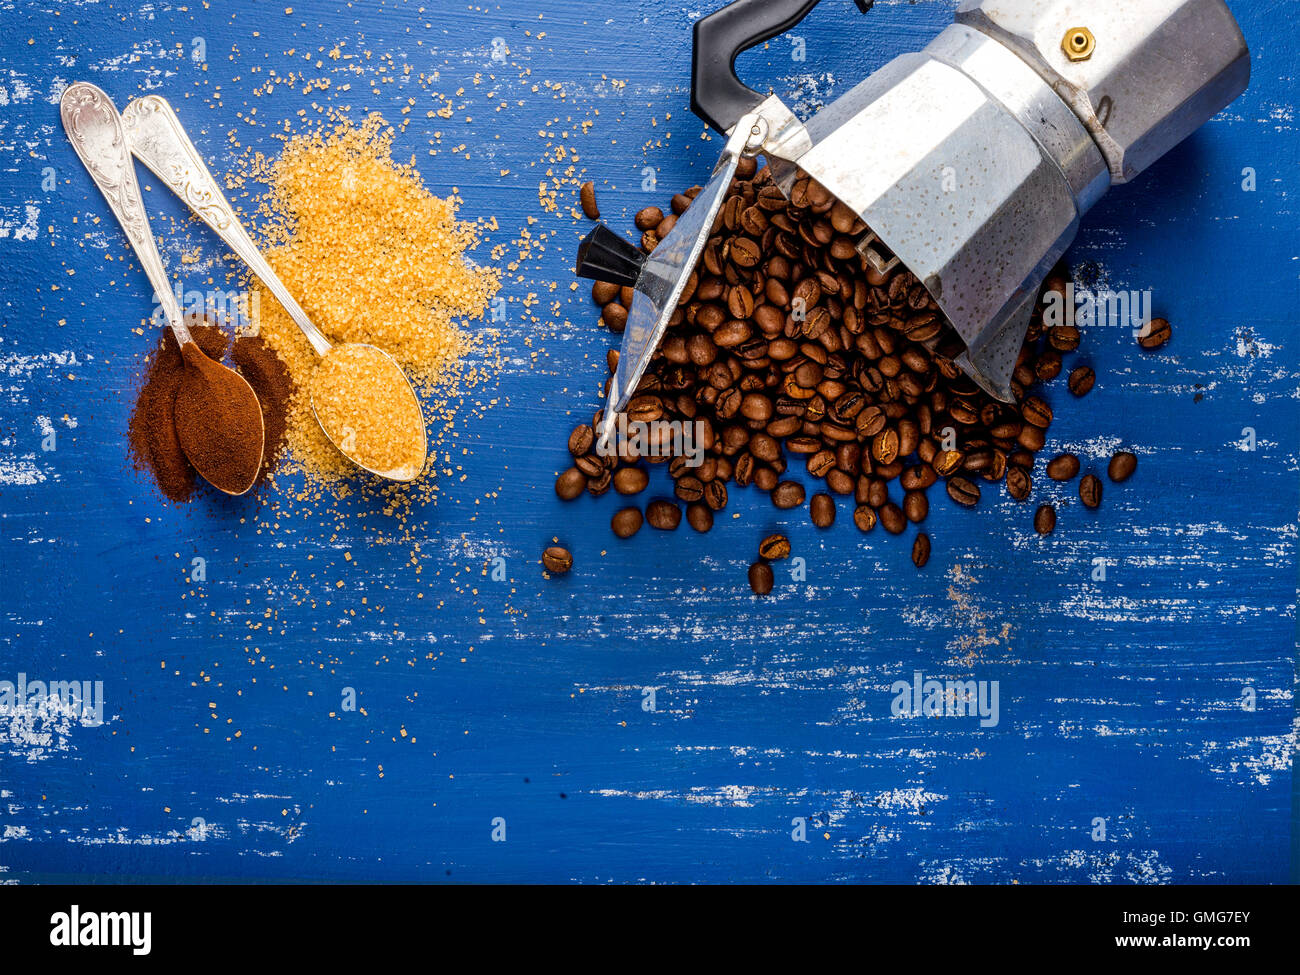 Arabika eans in moka pot,brown sugar and ground coffee on wooden blue painted table - Stock Image